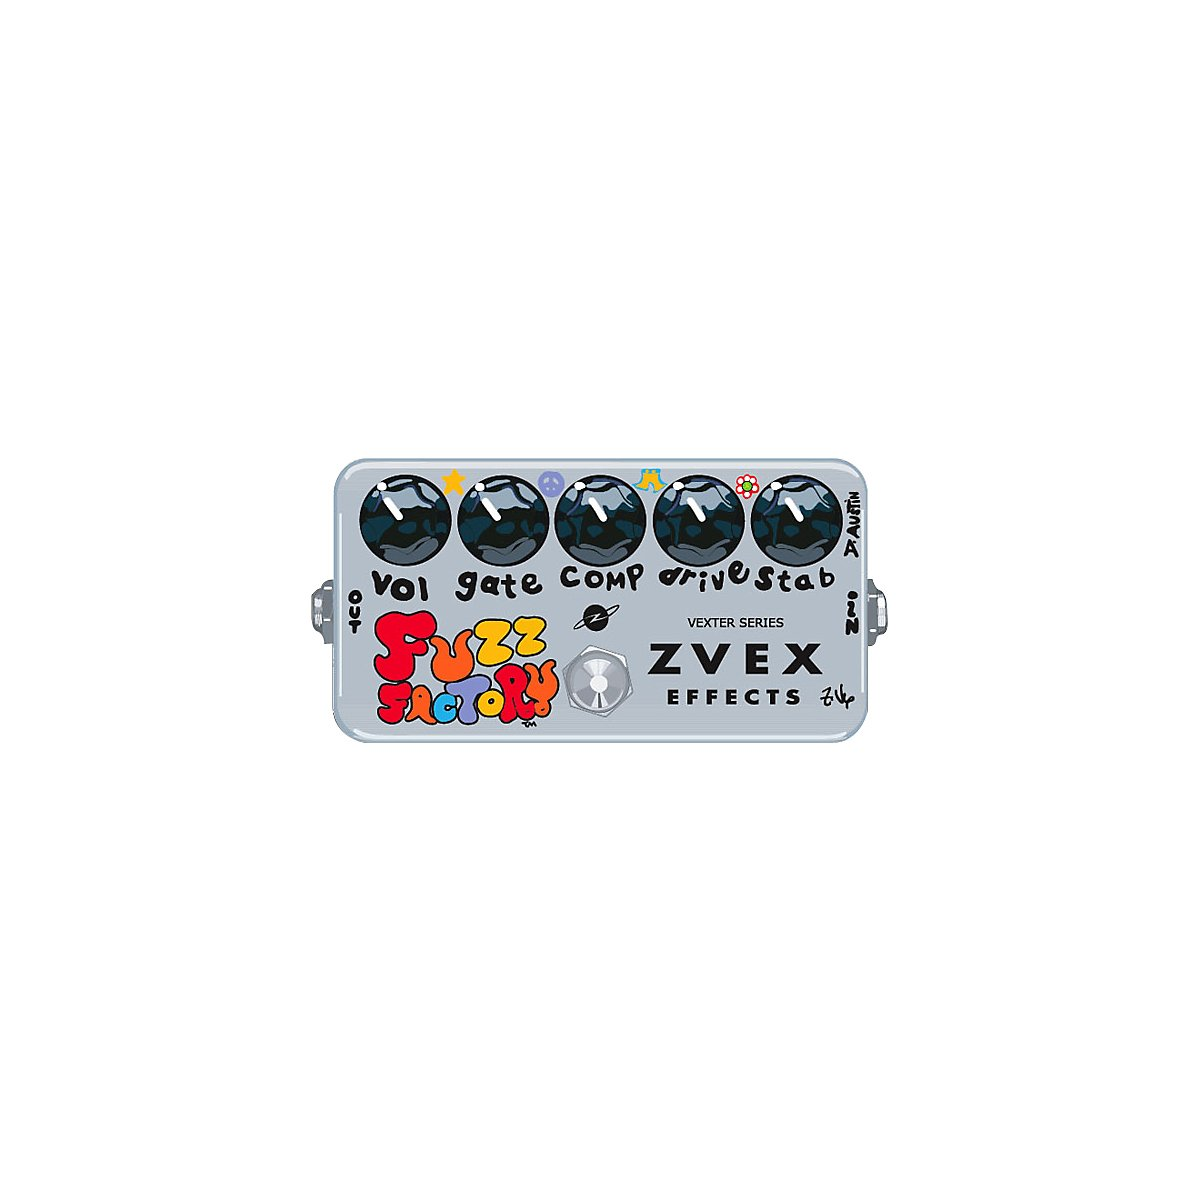 ZVex Vexter Fuzz Factory Guitar Effect Pedal nux metal core distortion stomp boxes electric guitar bass dsp effect pedal 2 metal hardcore sound true bypass